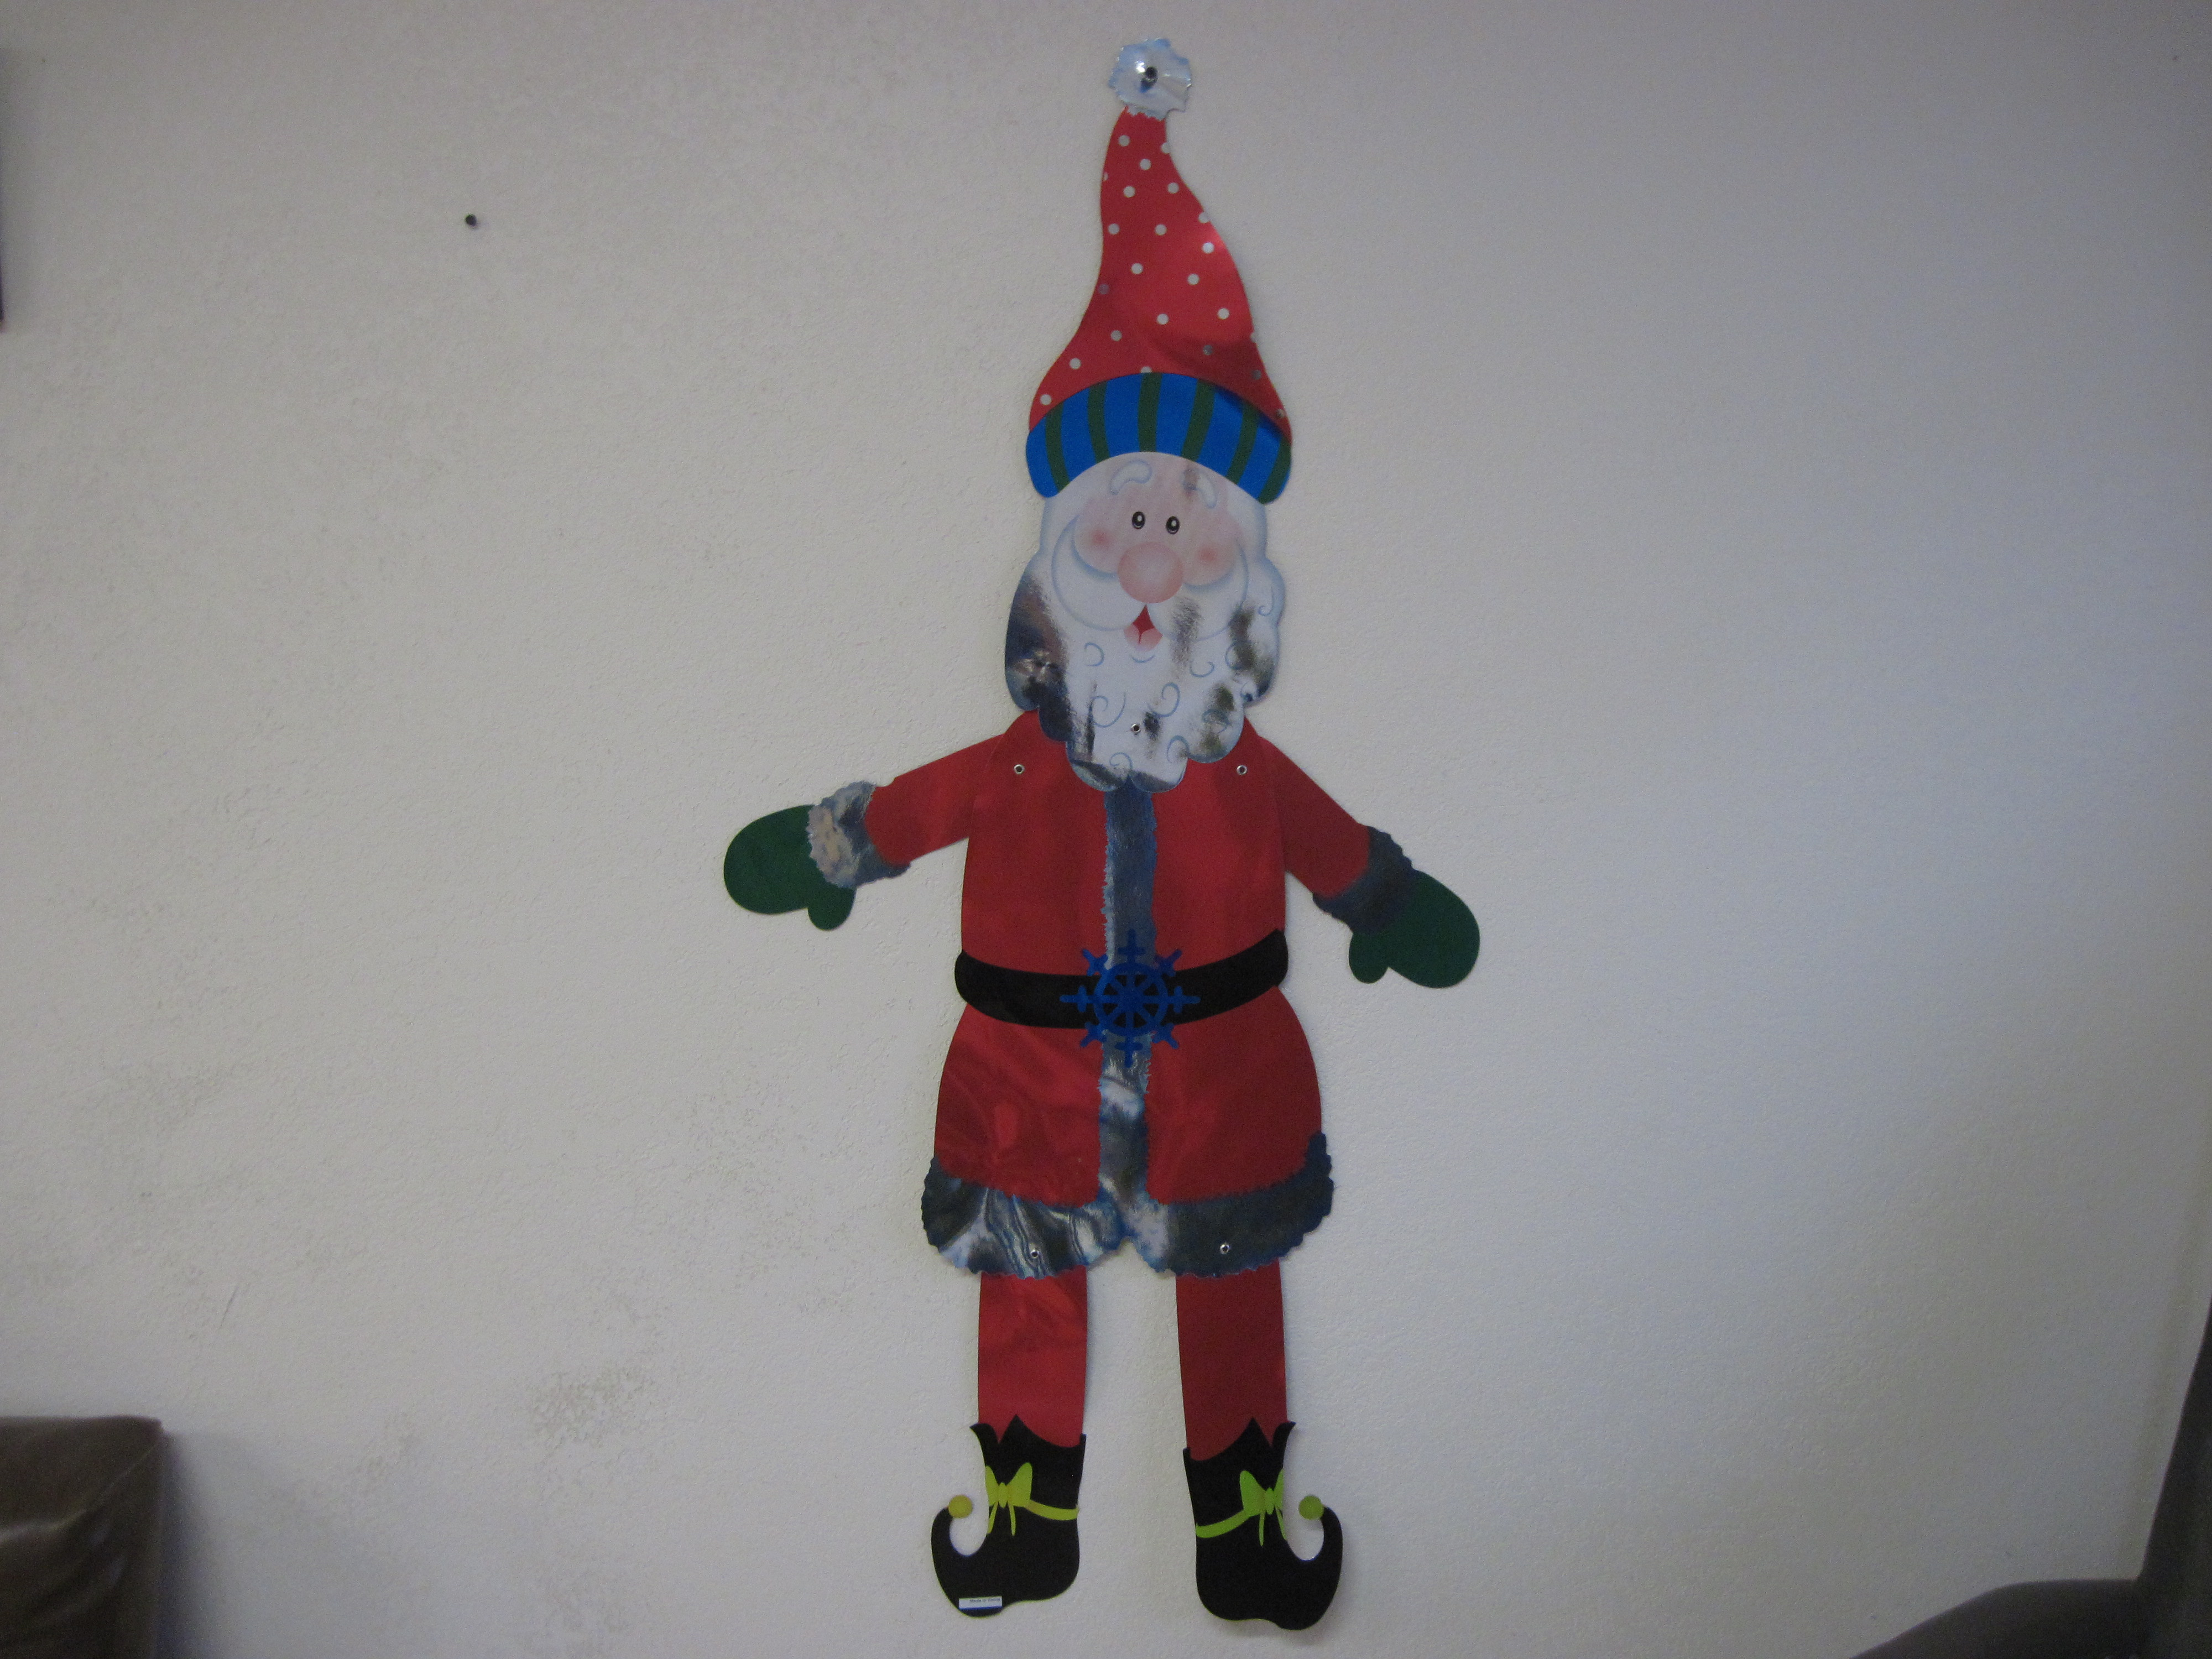 4' Metallic Jointed Decoration - Santa